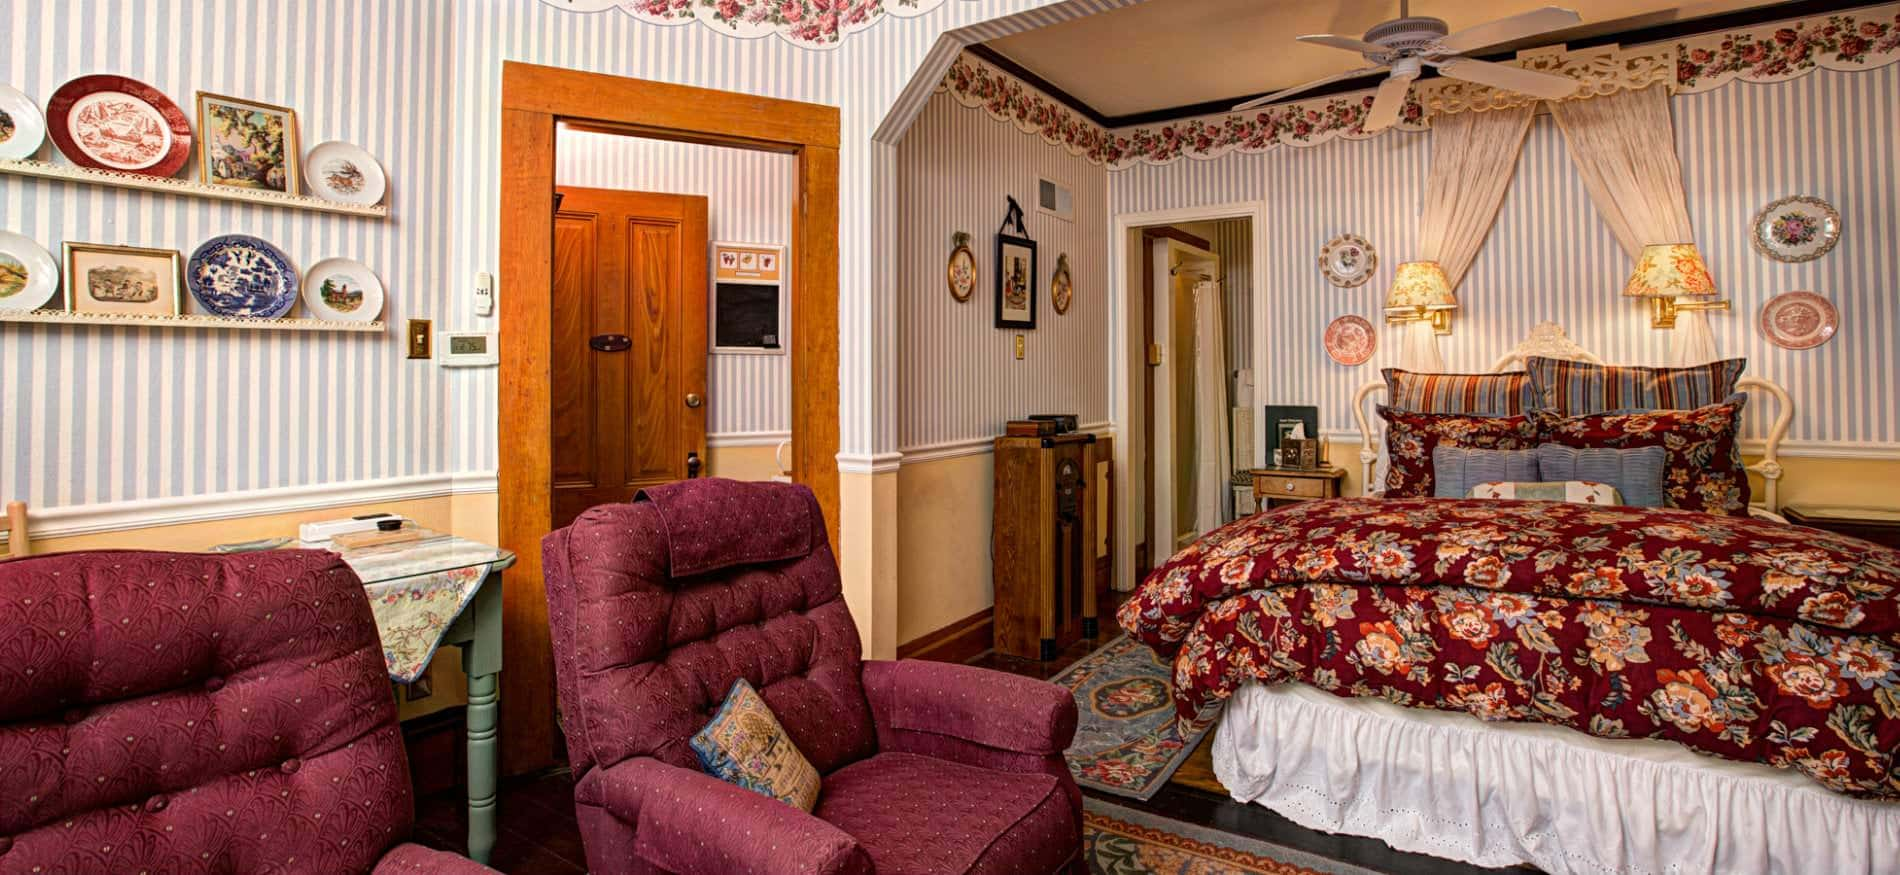 Spacious guest room with blue and white striped wallpaper, a red floral covered bed and two red upholstered chairs